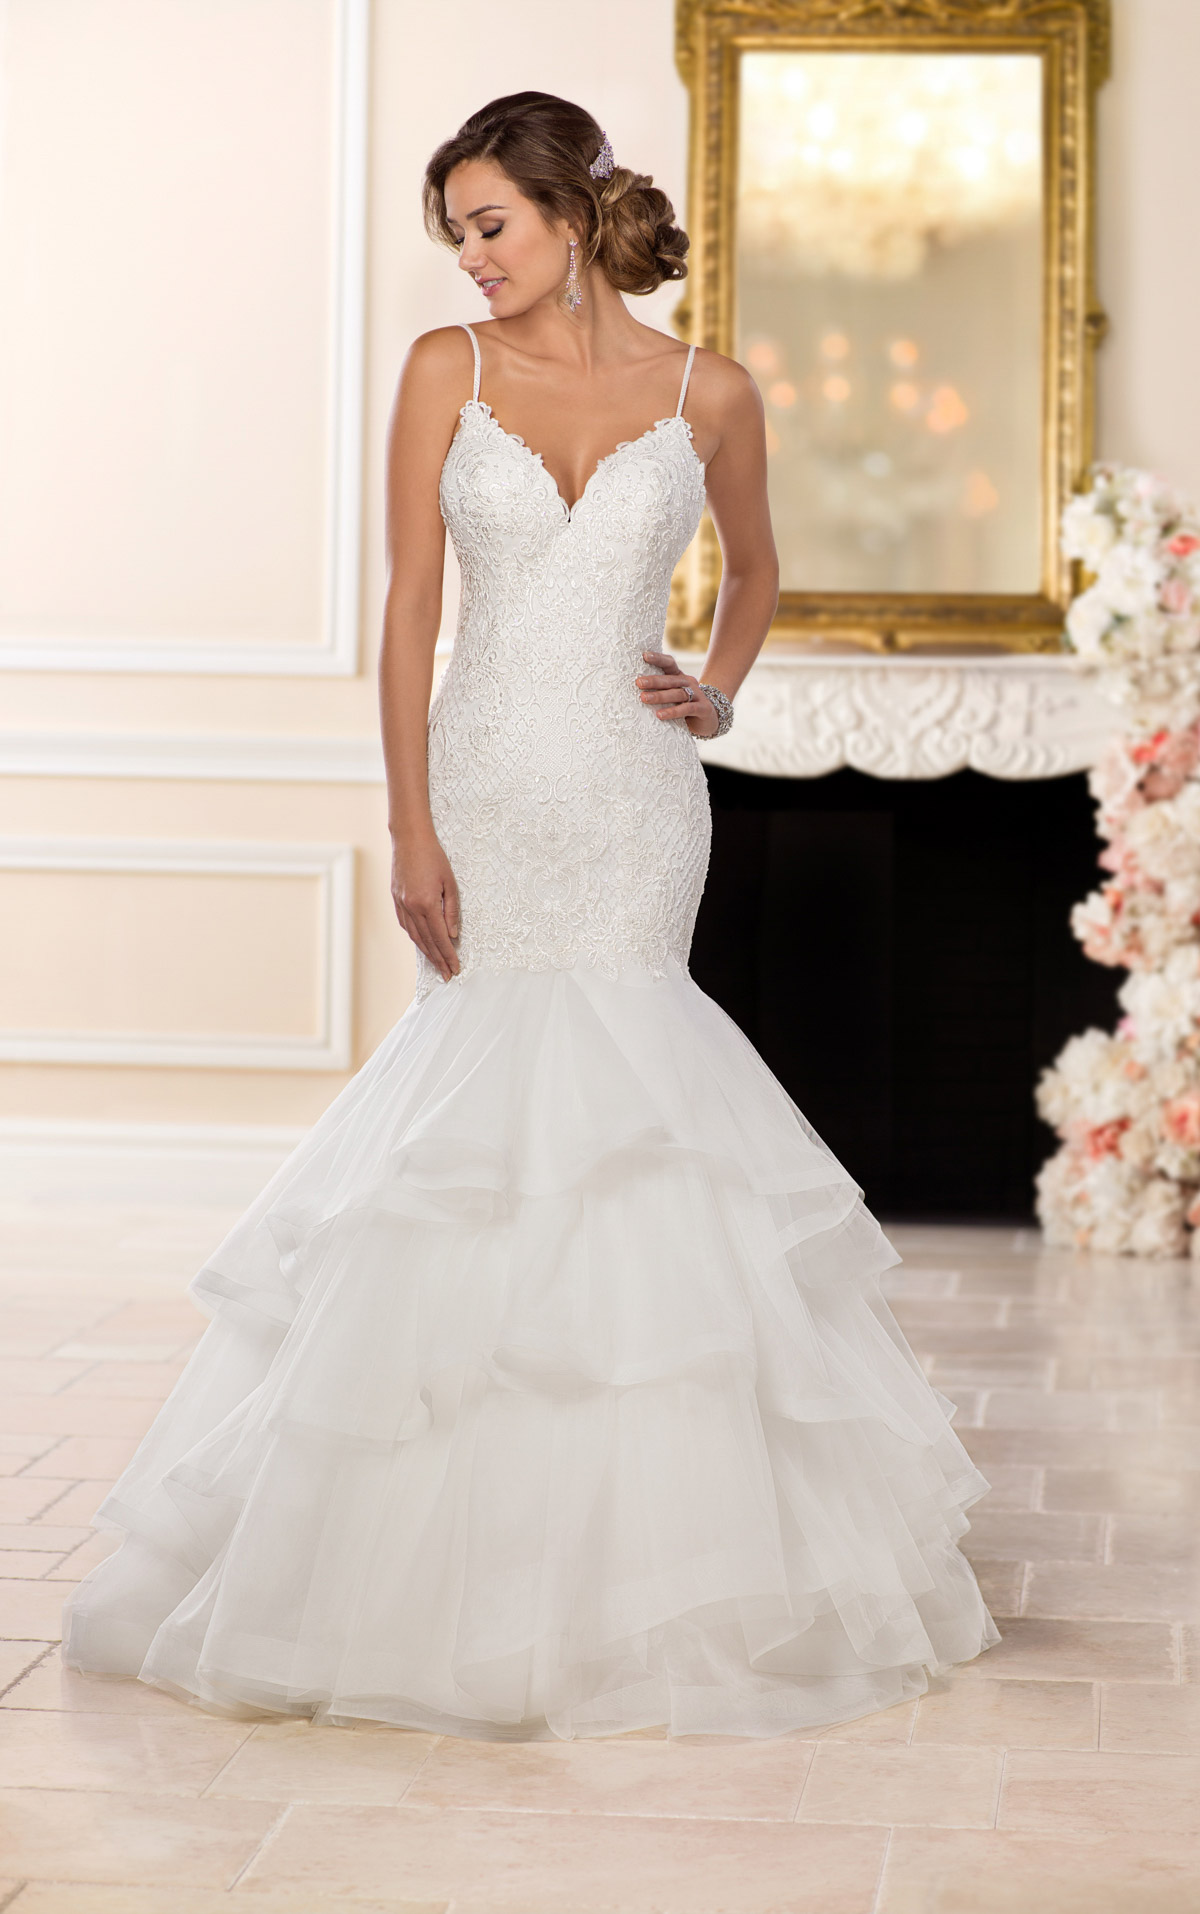 wedding dresses with lace straps photo - 1